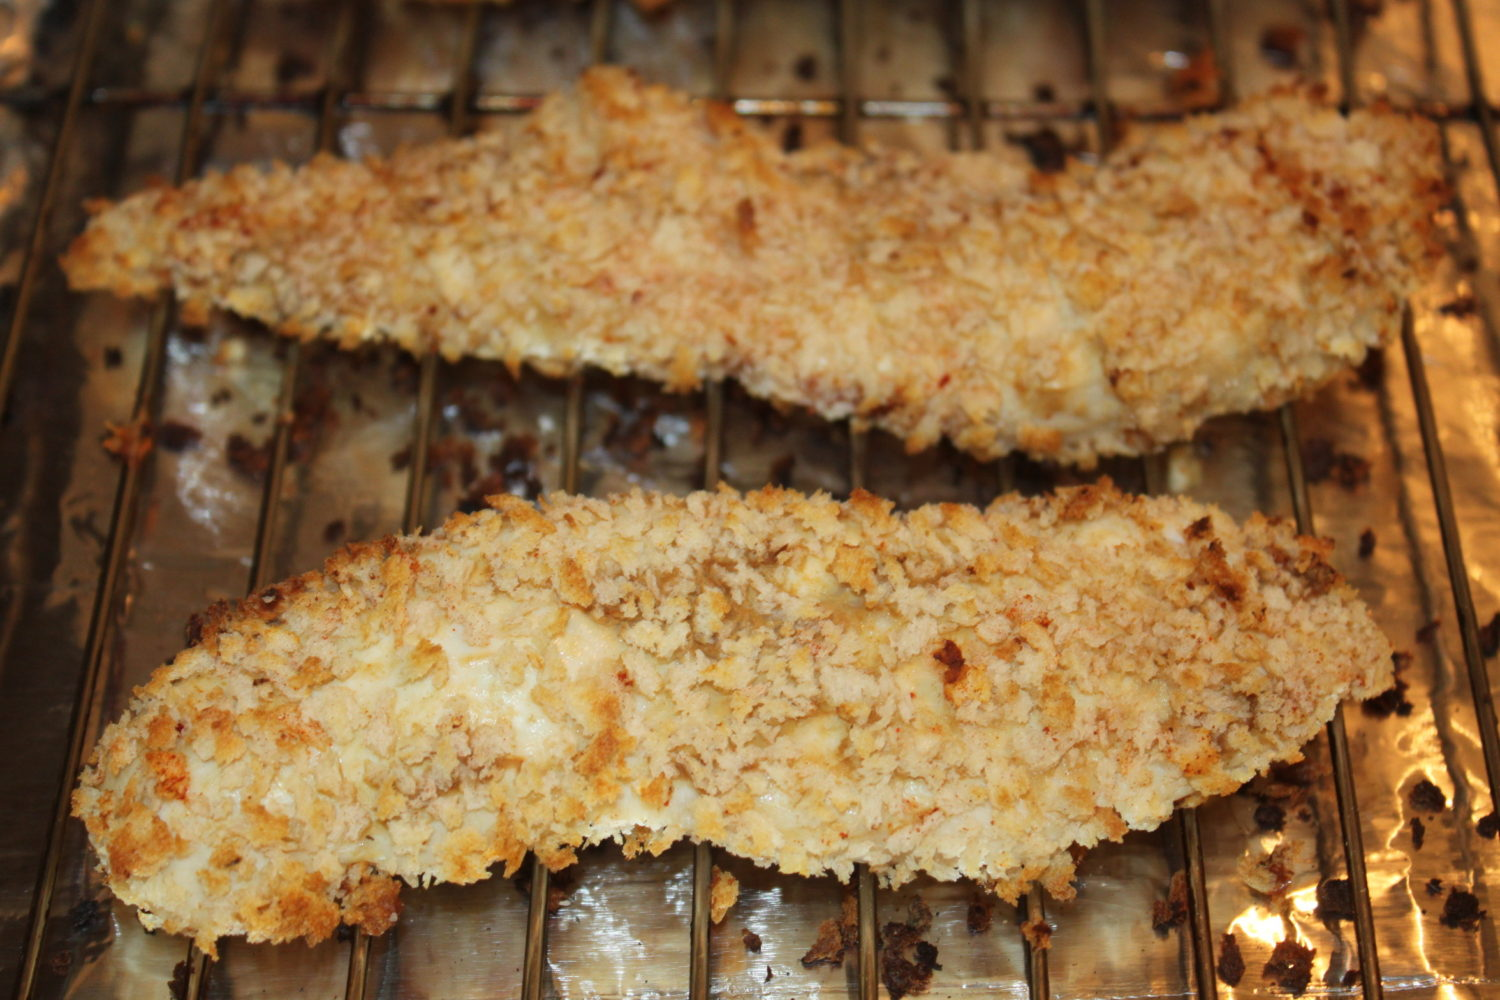 Half Way Through The Baking, Turn Tenders Over To Brown Evenly Baked  Chicken Tenders Baked